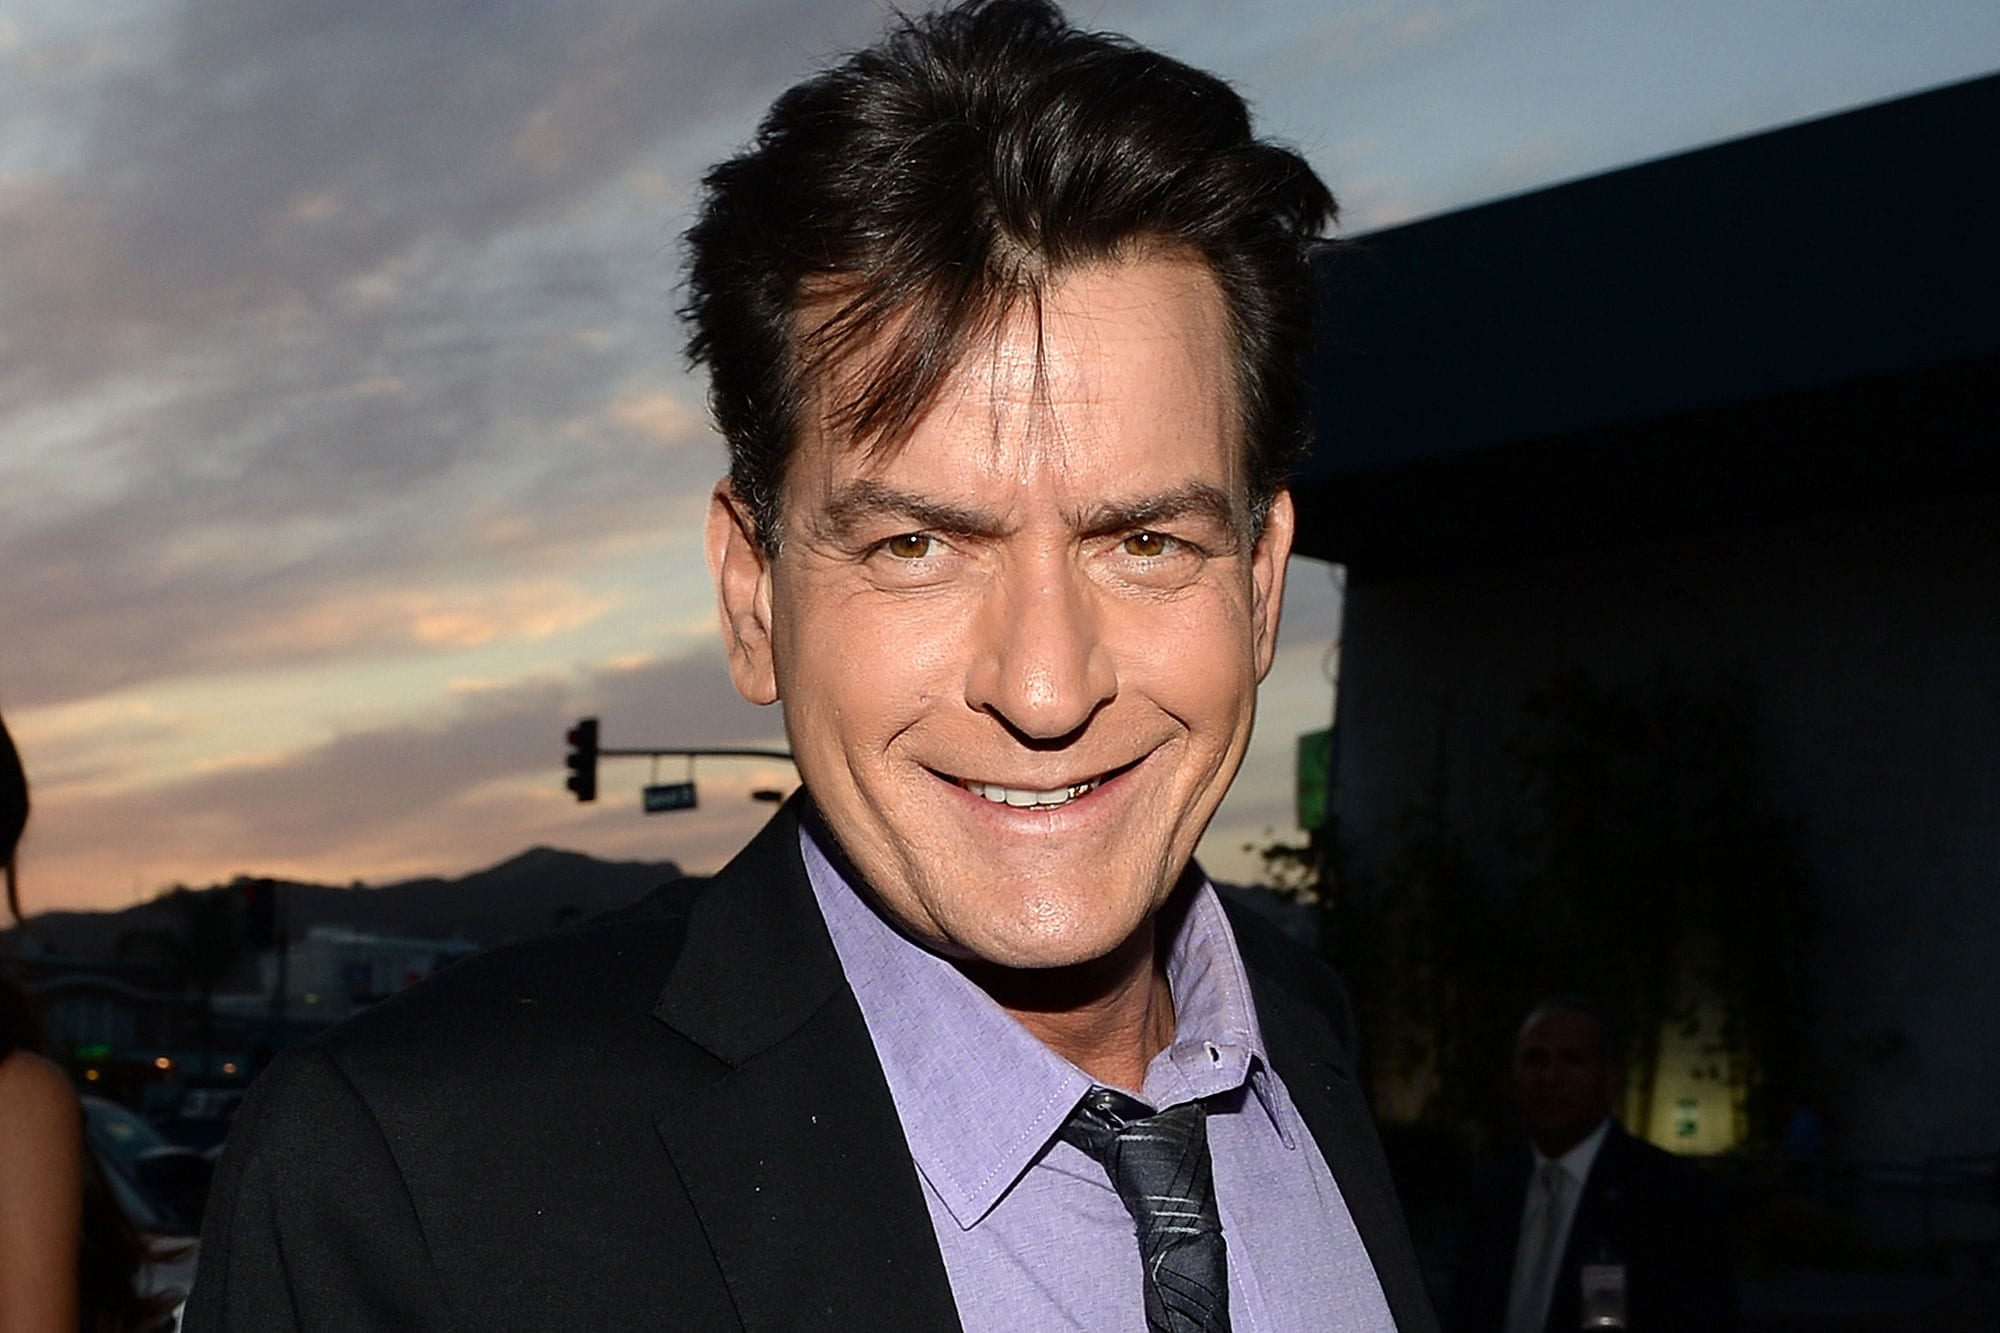 Charlie Sheen Net Worth 2019 - The Star of the Two and a